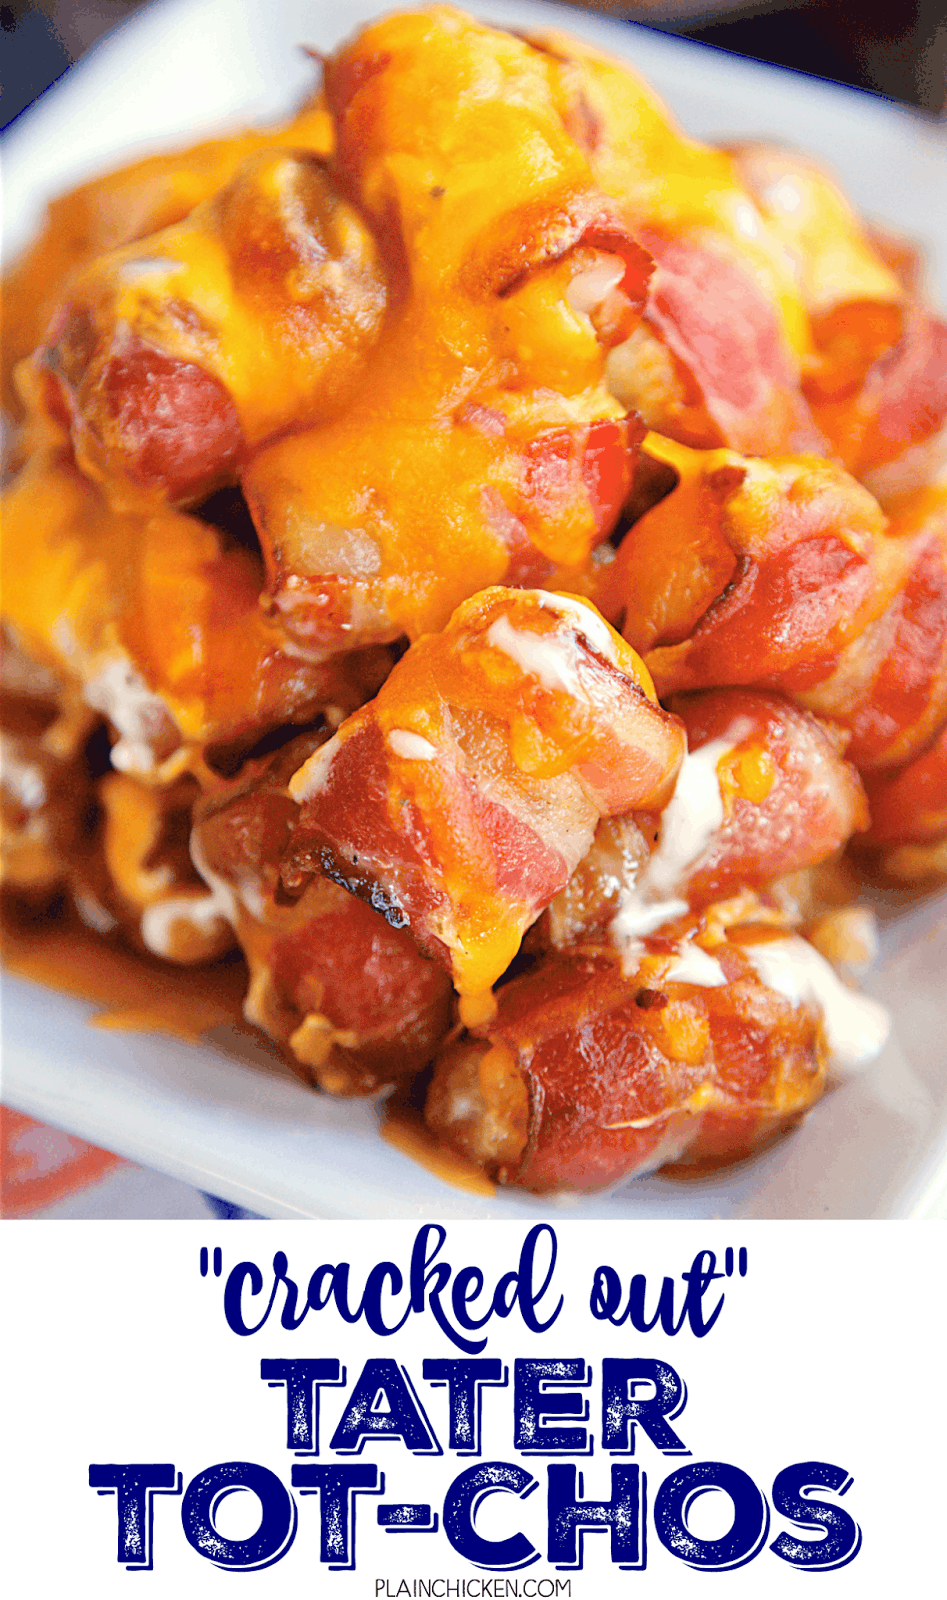 """Cracked Out"" Tater Tot-Chos - Bacon wrapped tater tots topped with Ranch dressing and cheddar cheese. Only 4 ingredients and ready in about 30 minutes. OMG! This might be the best thing I've ever eaten! Seriously! These are gone in a flash! I never take home any leftovers."